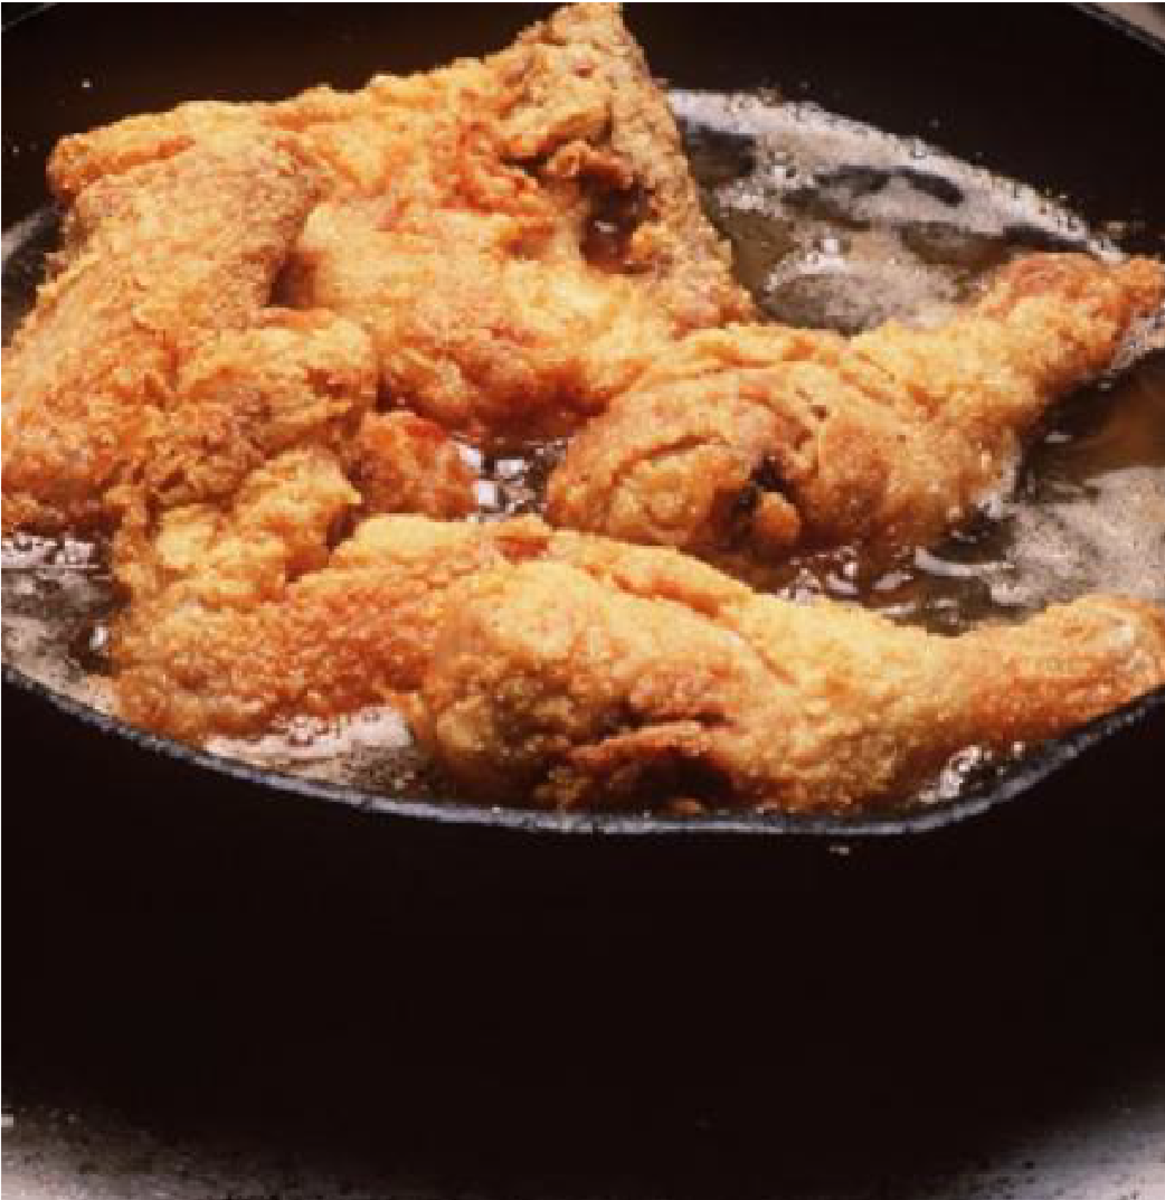 A good meal always made Ross feel better, and nobody could make better fried chicken better than Queenette Brown. Not even the Colonel.